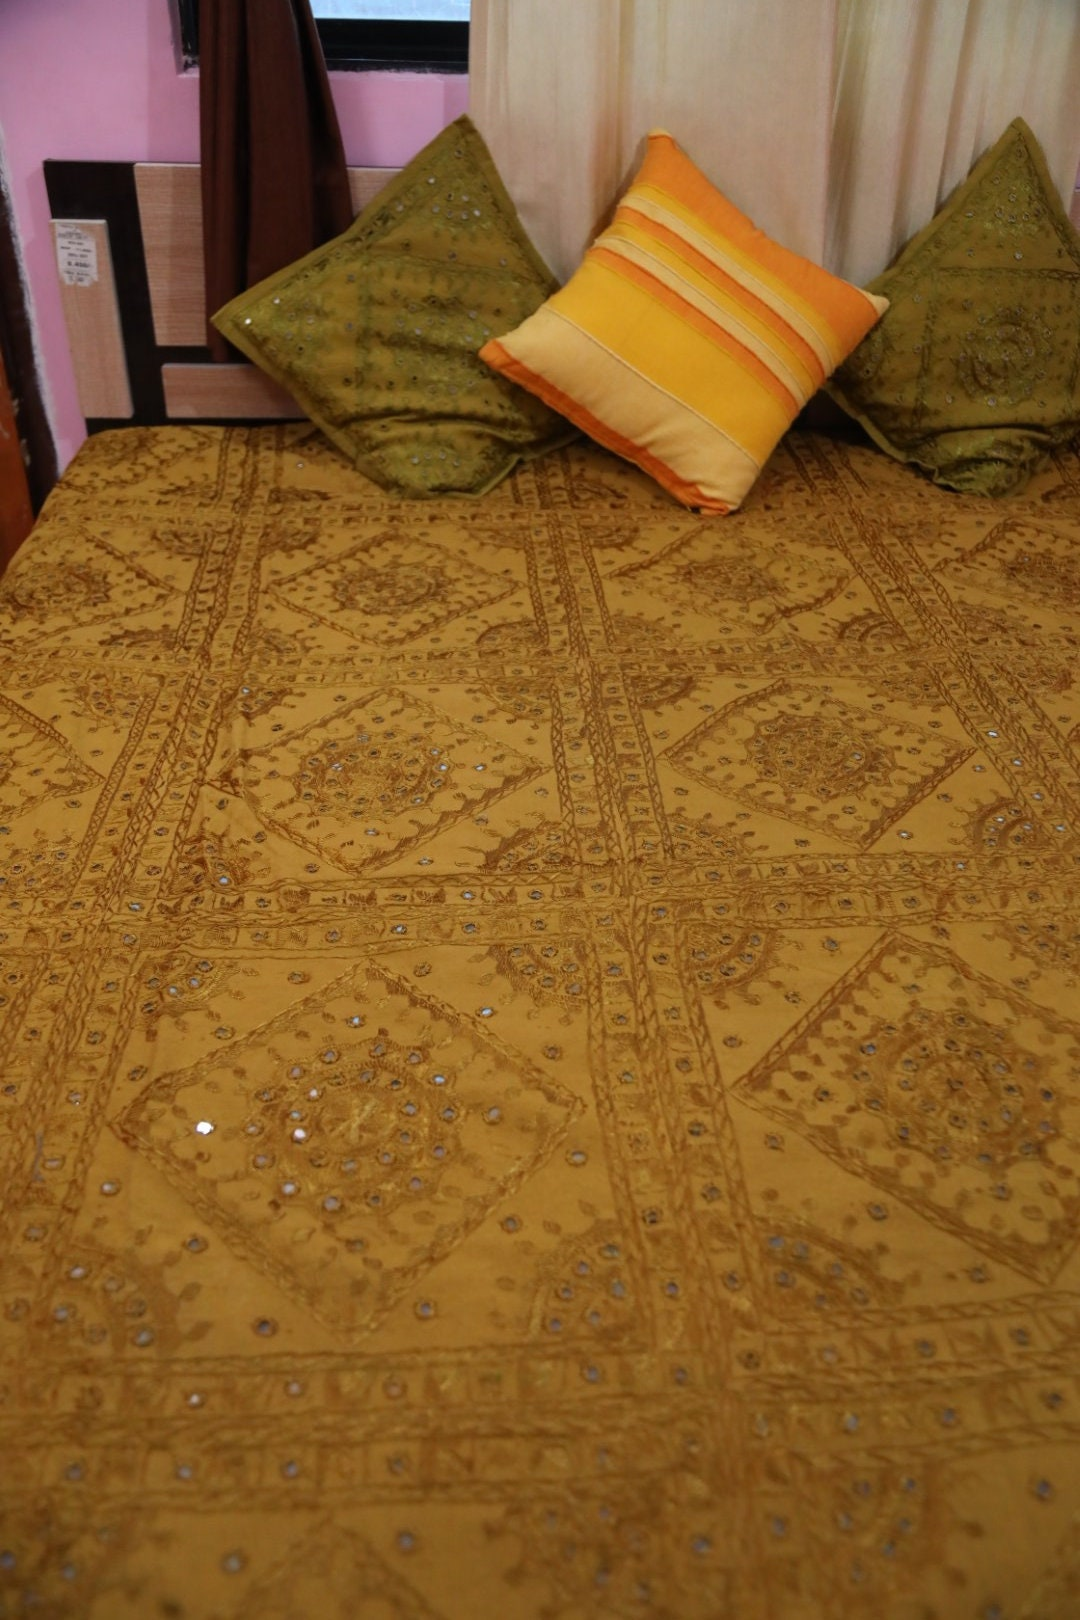 Khaki Ethnic Indian Mirror Hand Embroidered Bedspread Traditional Mirror Work Tapestry Cotton Quilt Coverlet Decorative Wall Hanging Throw